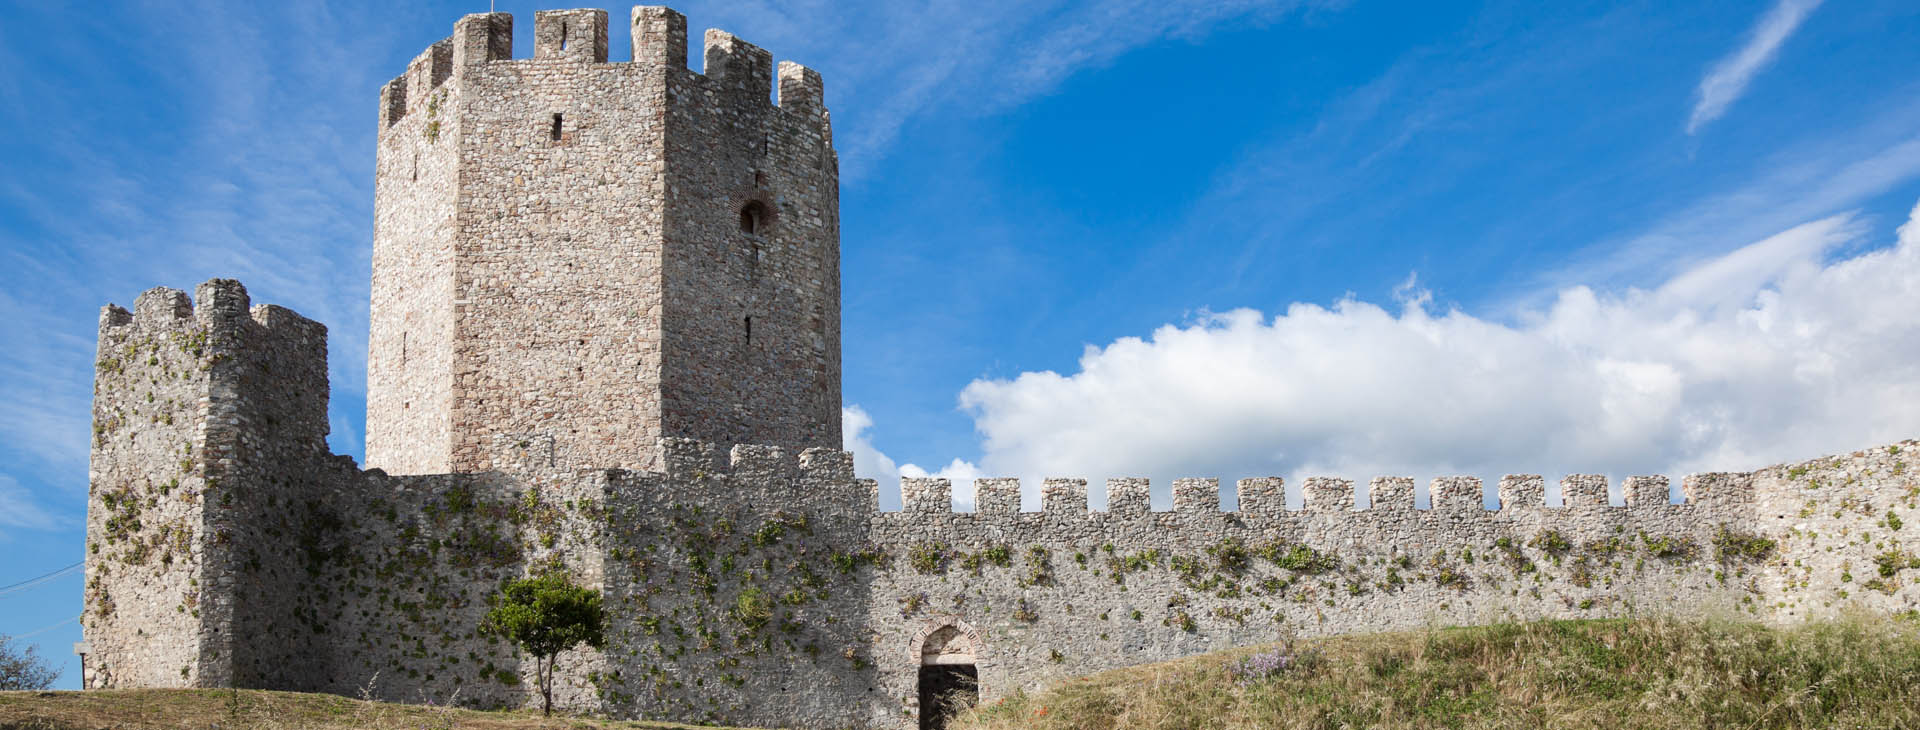 The castle of Platamonas, Pieria